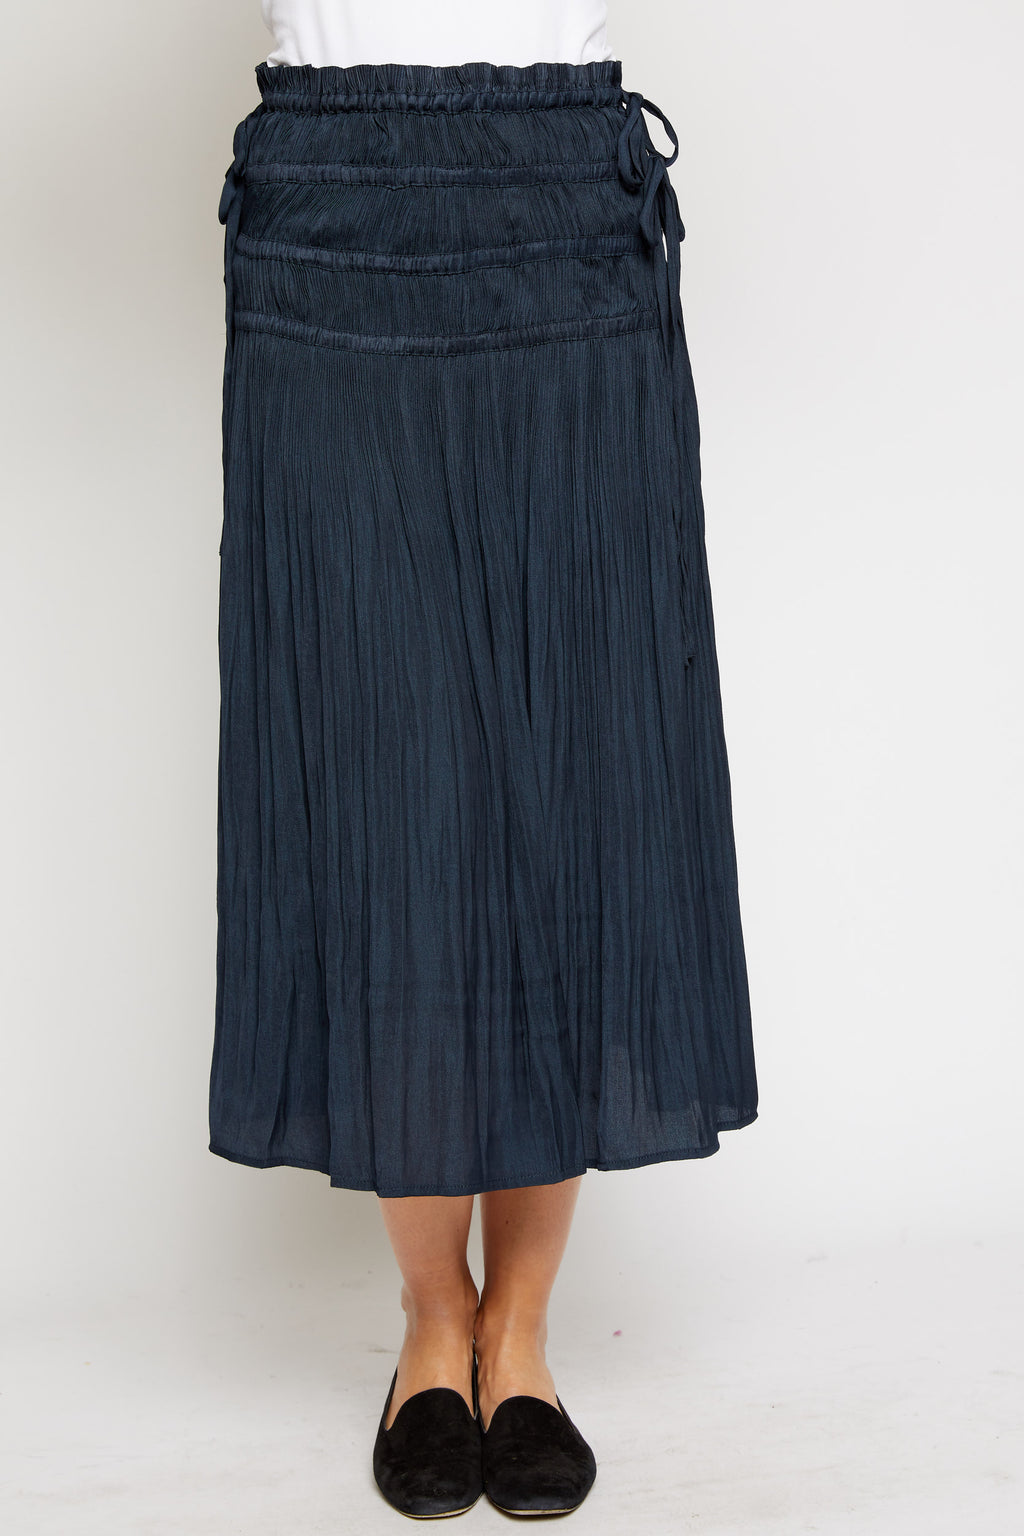 Pleated Mid Length Skirt - Jacqueline B Clothing